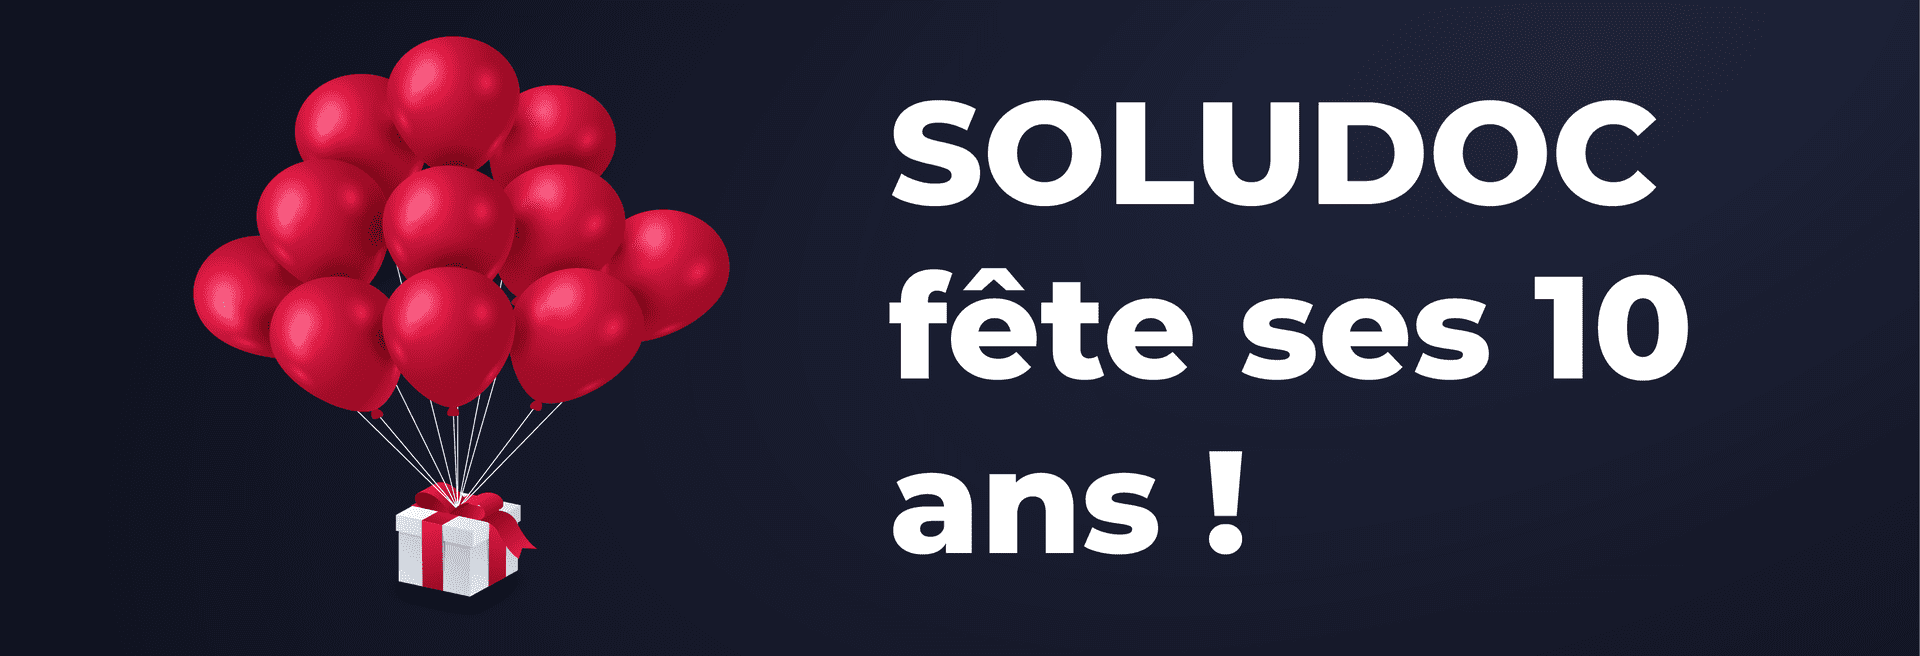 SOLUDOC 10 ANS